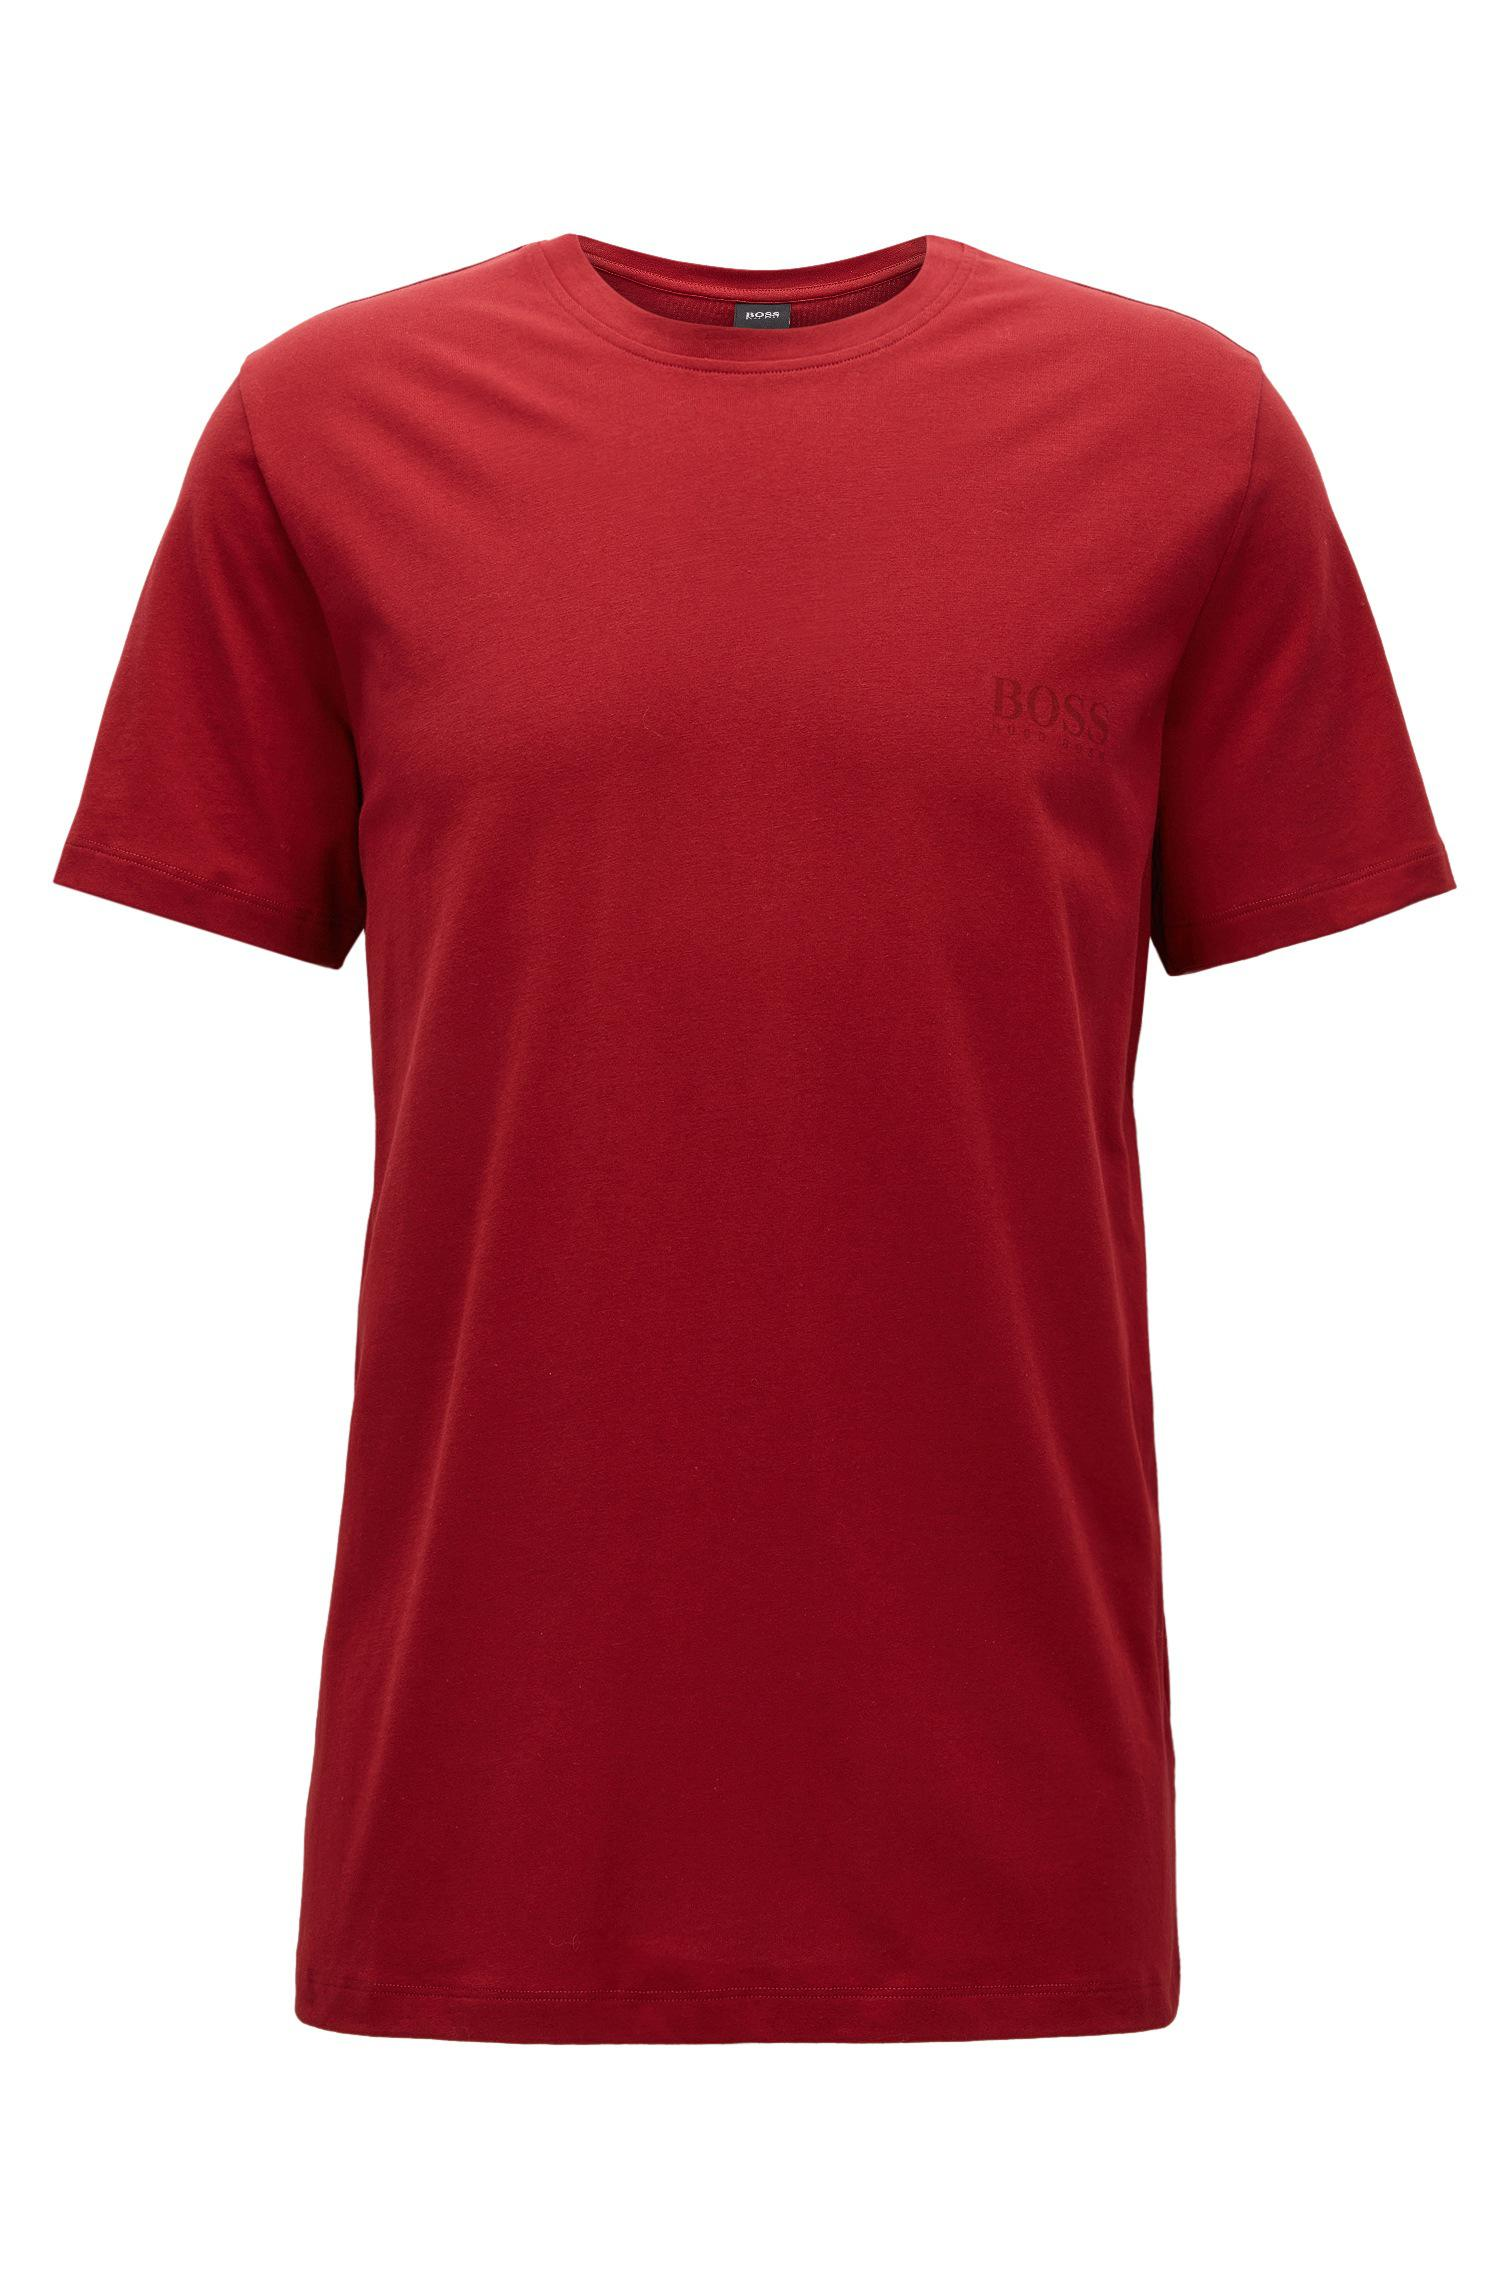 Lyst boss relaxed fit t shirt in soft cotton in red for men for Soft cotton dress shirts